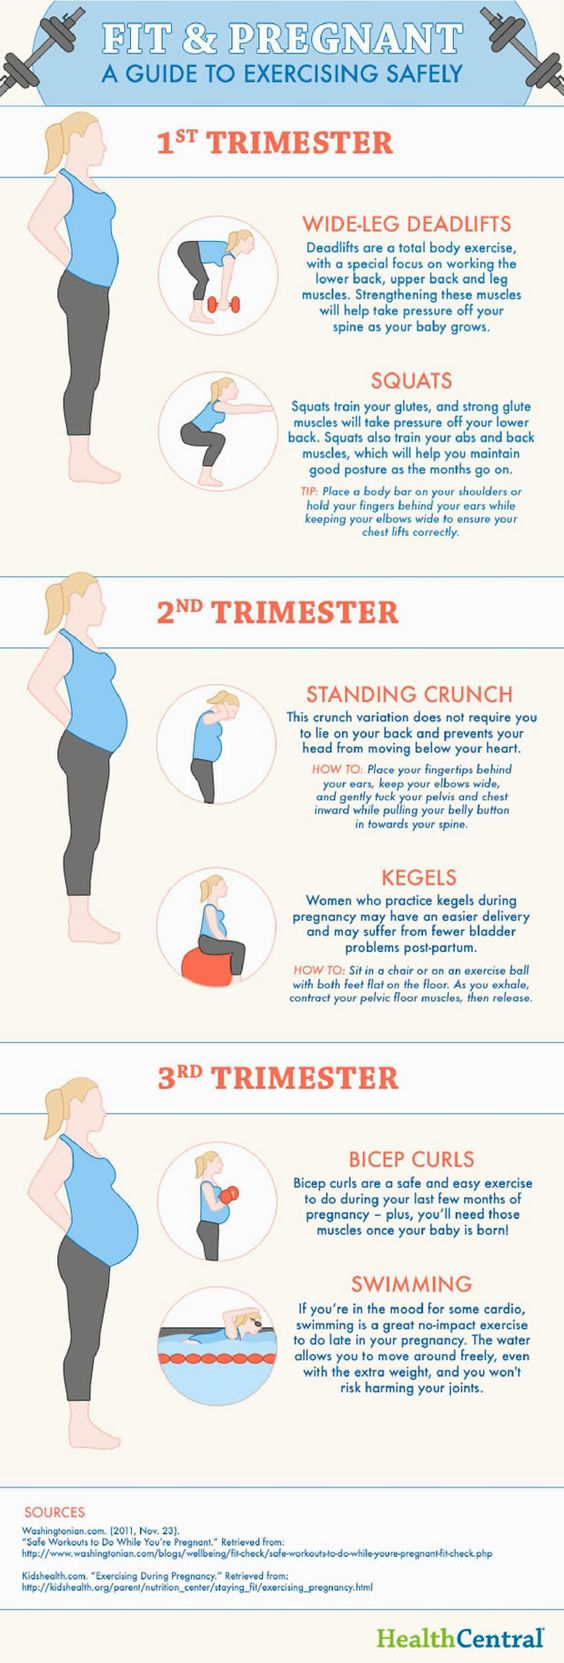 How to exercise safely while pregnant